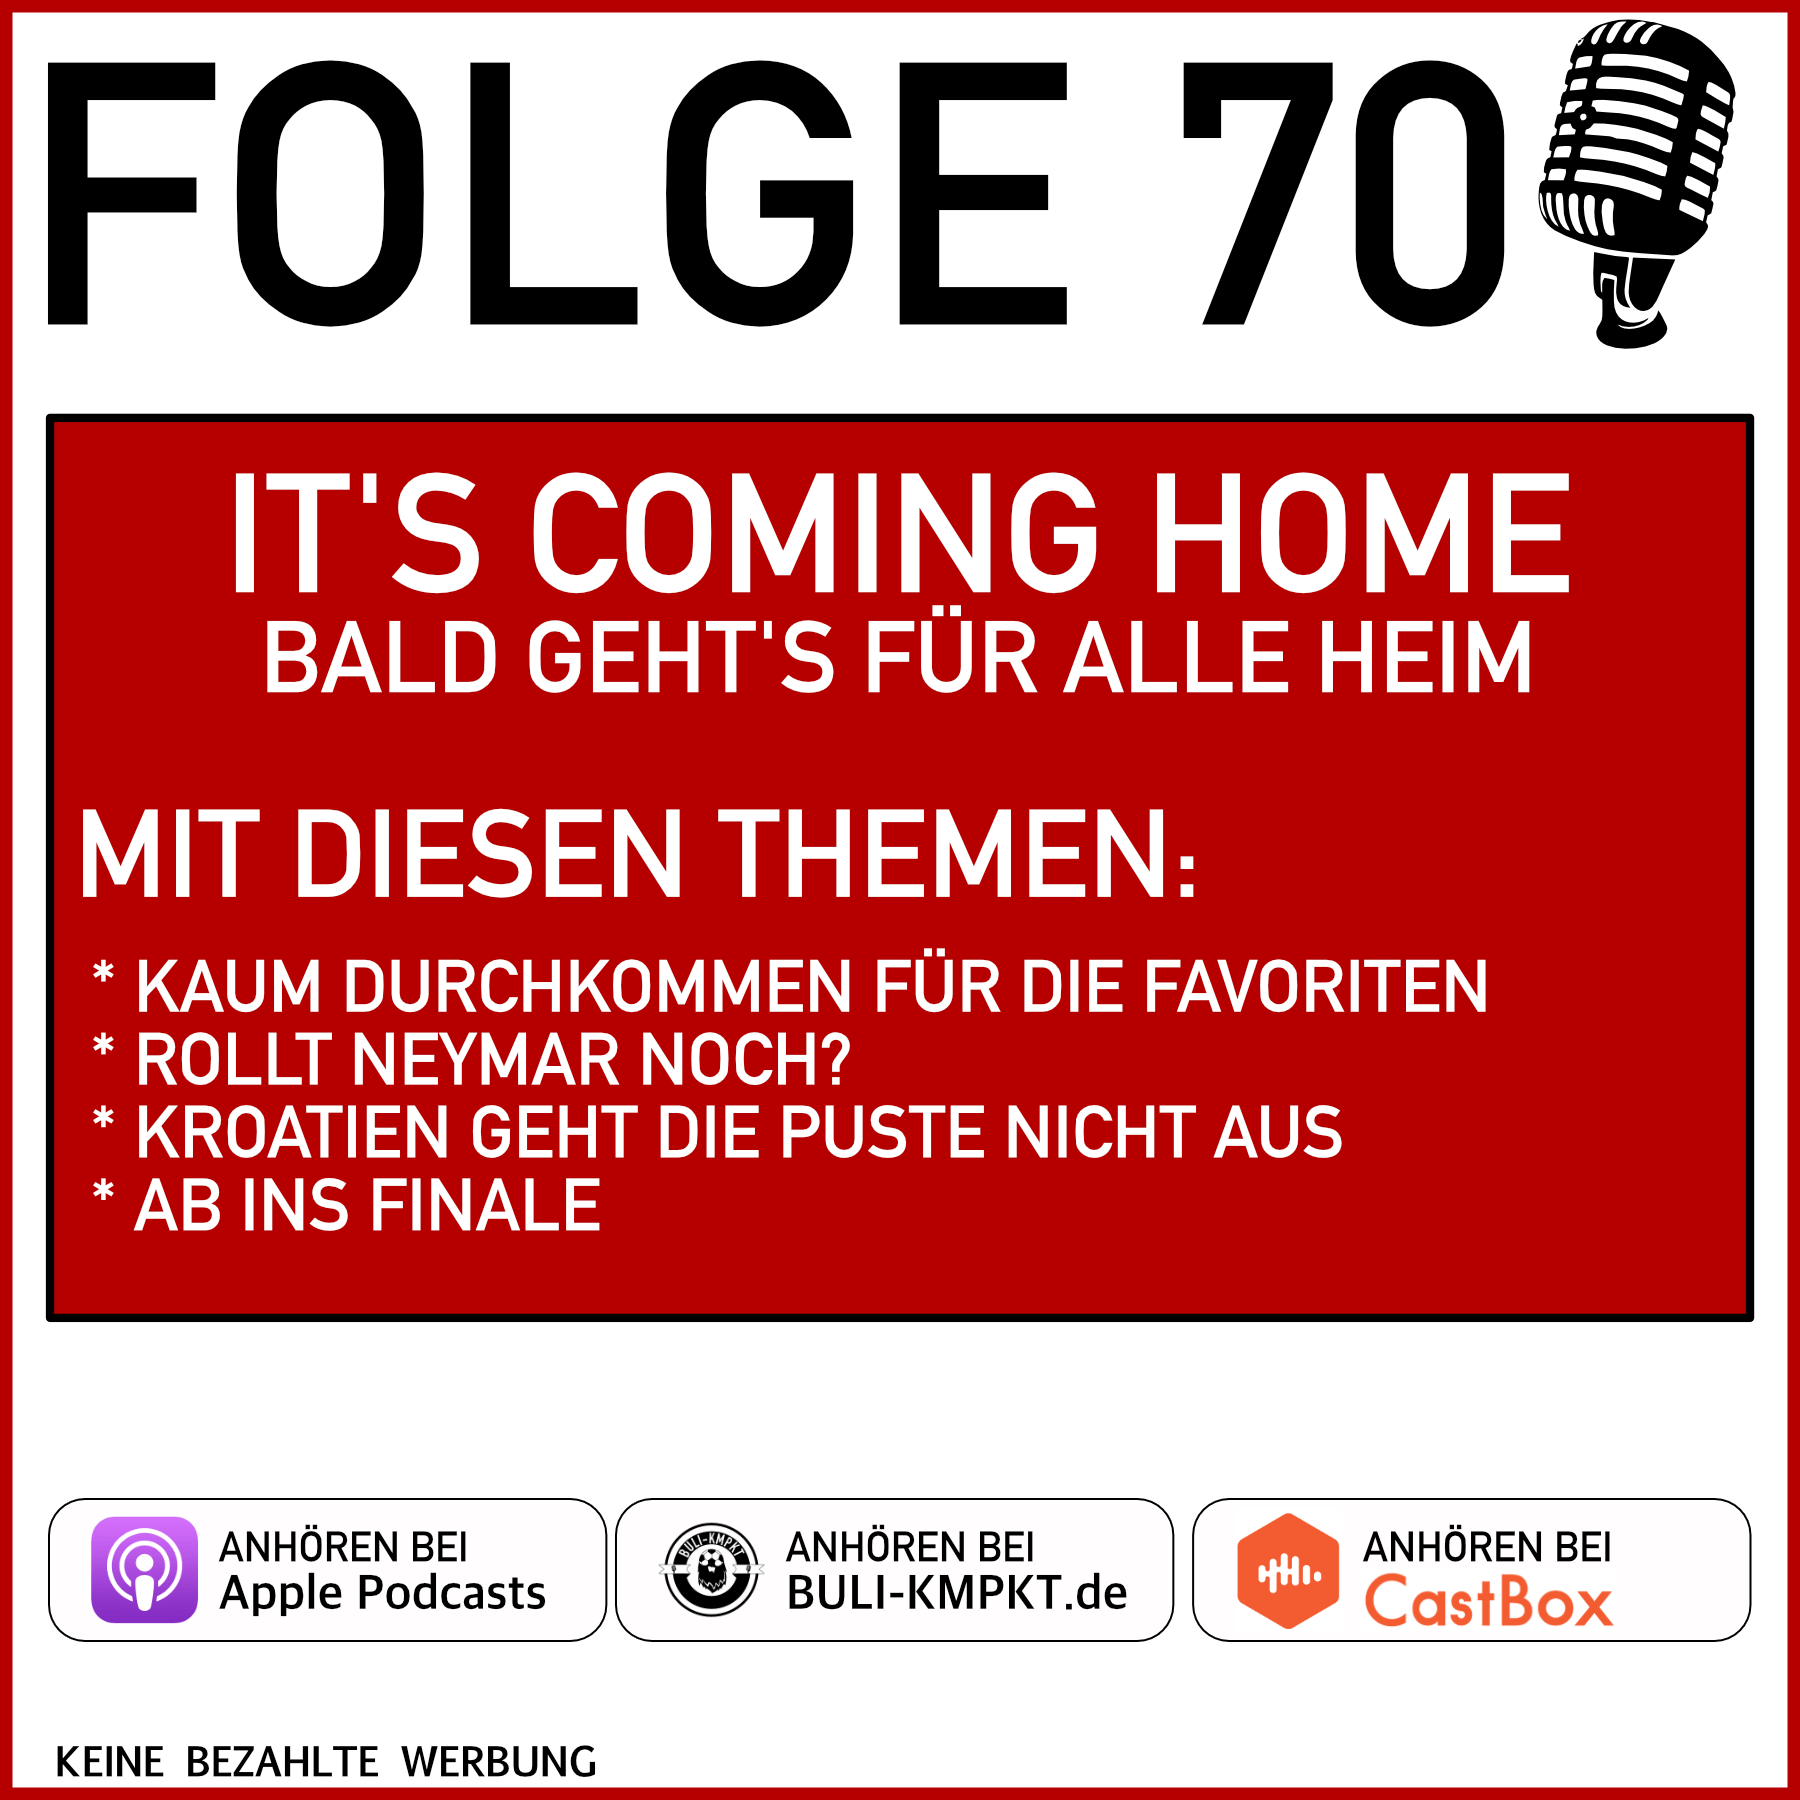 FOLGE 70 – IT'S COMING HOME